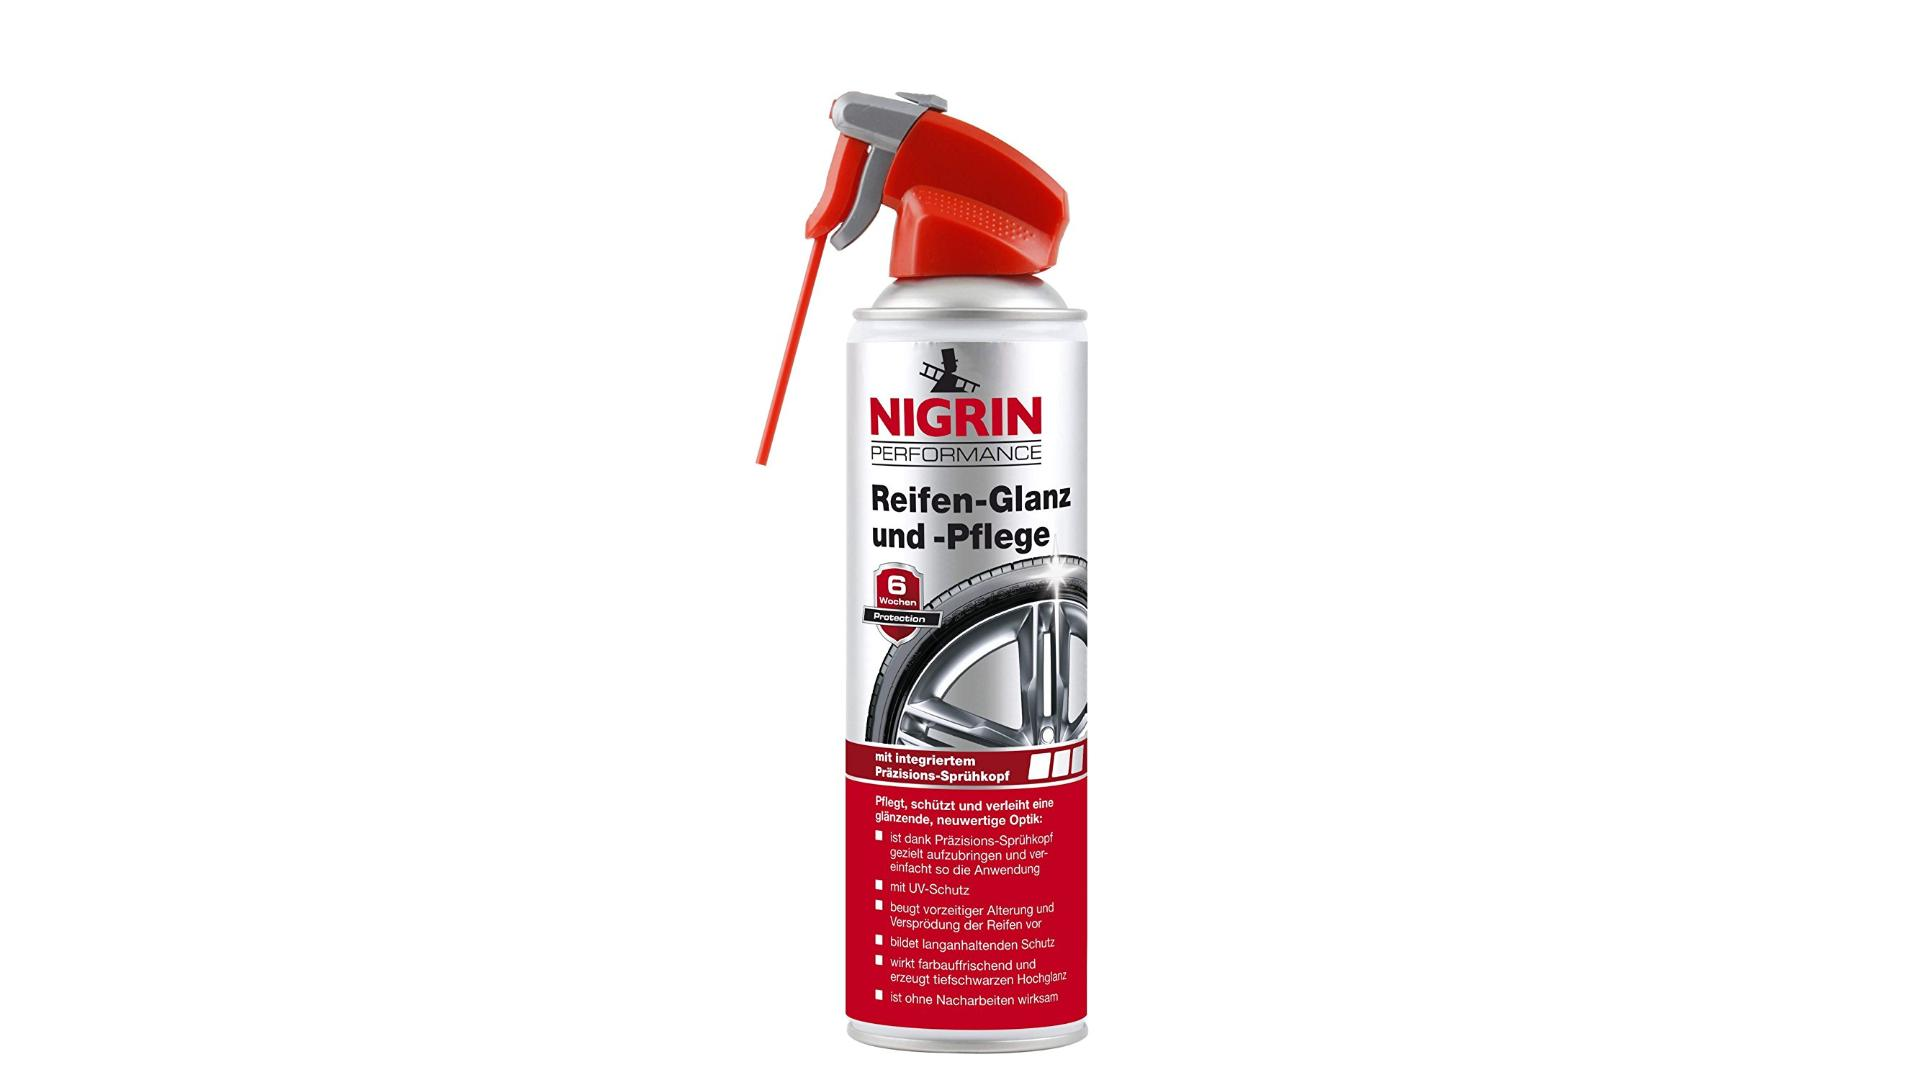 NIGRIN Tire Polishing and Treatment 500ml